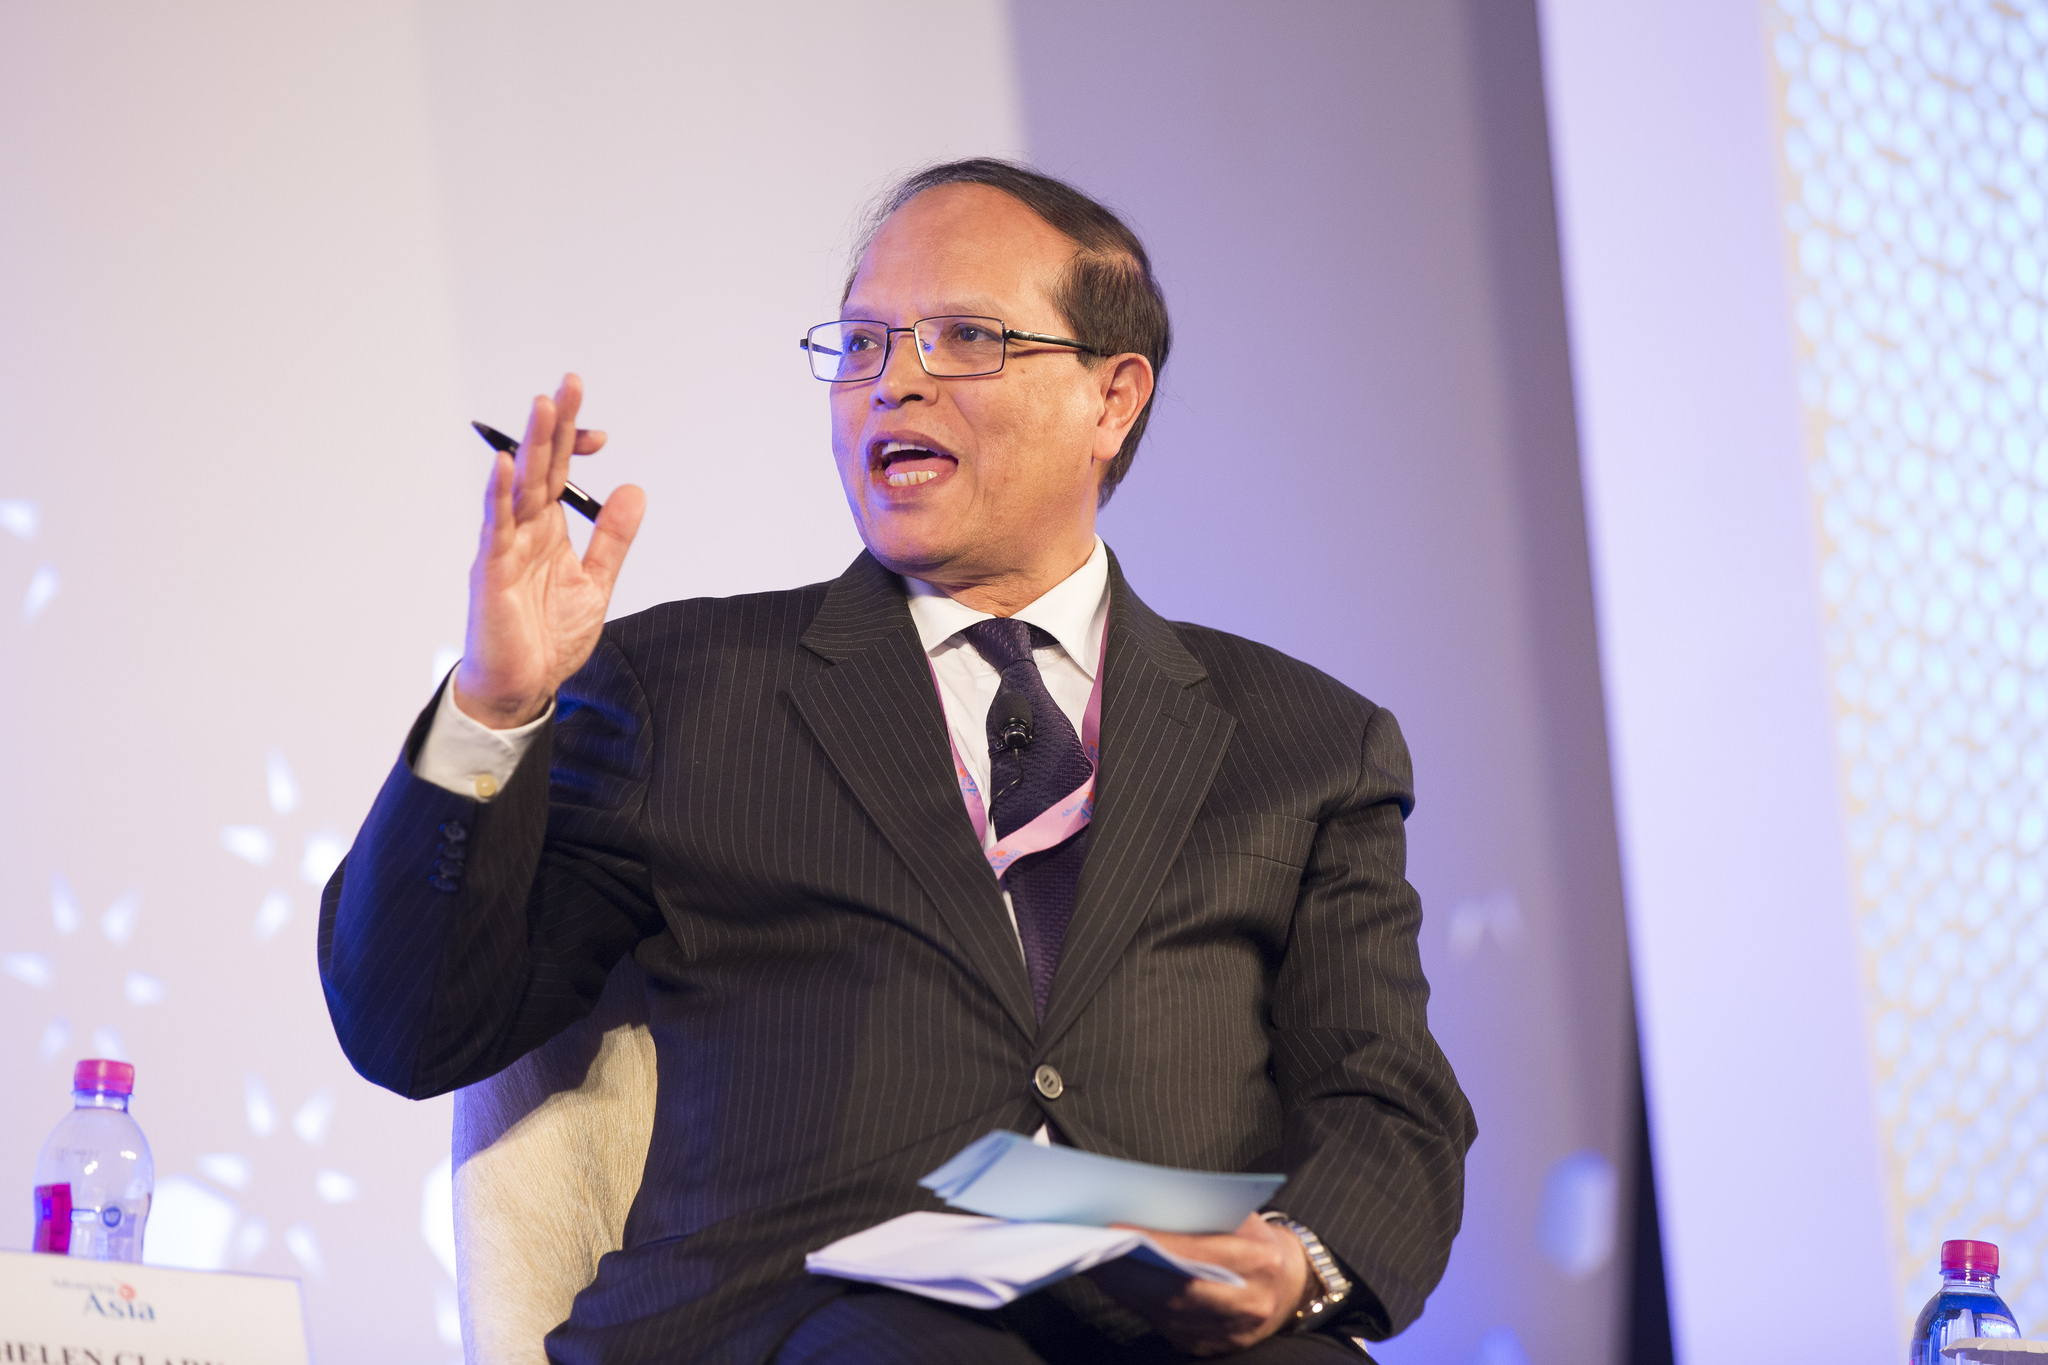 Atiur Rahman, Governor, Central Bank of Bangladesh. Image from Flickr by IMF. CC BY-NC-ND